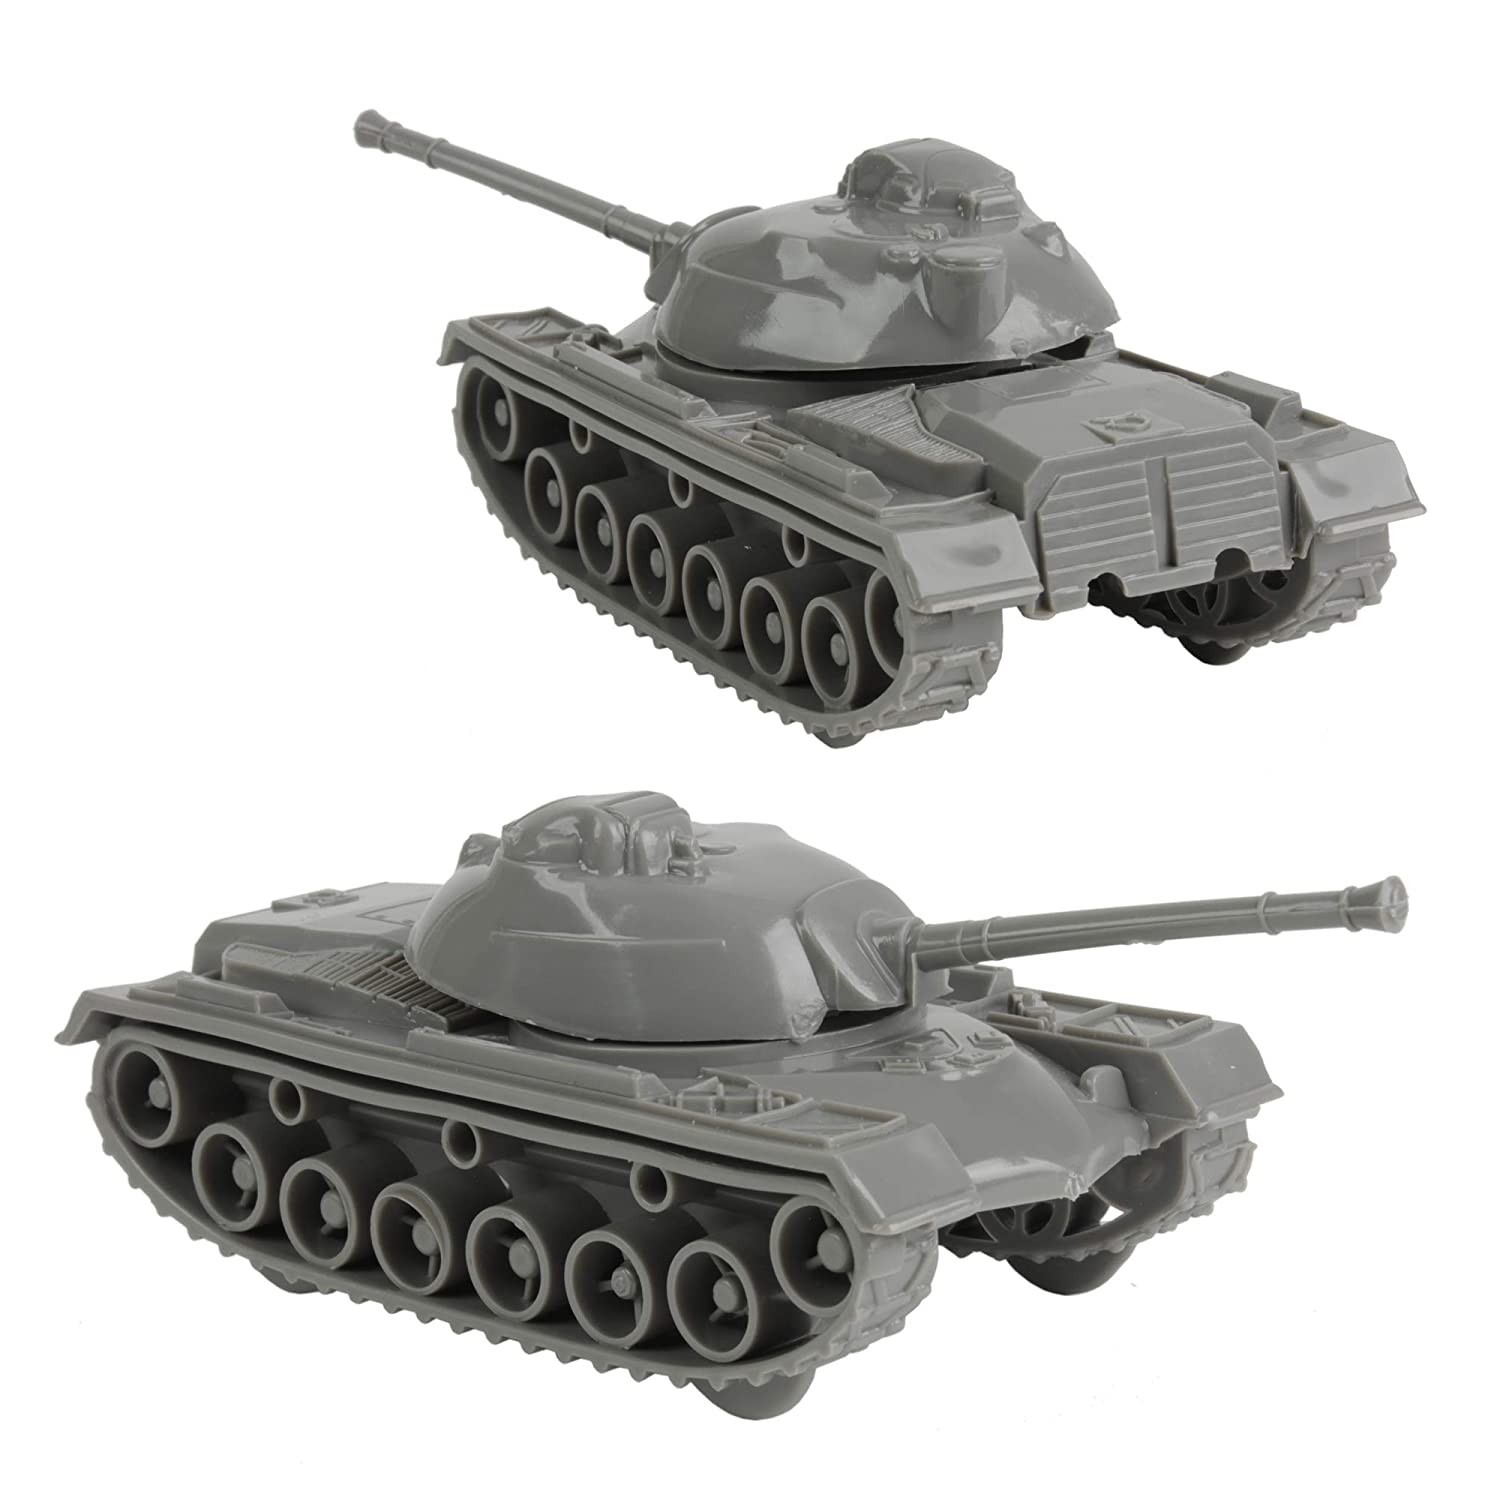 TimMee Toy Tanks for Plastic Army Men Gray WW2 3pc Made in USA